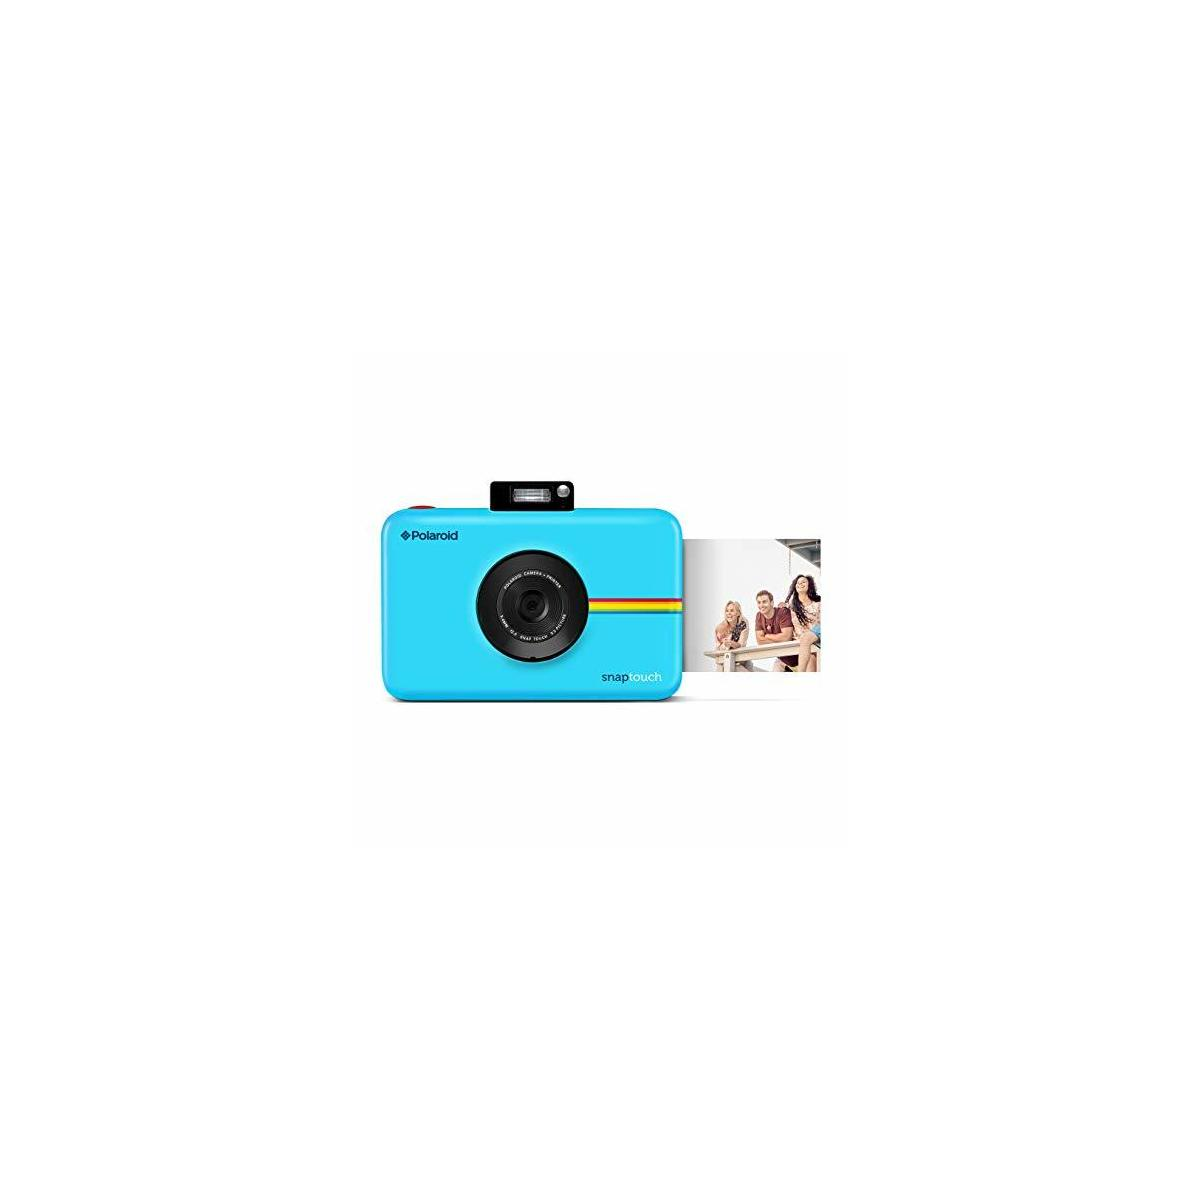 Polaroid Snap Touch Portable Instant Print Digital Camera with LCD Touchscreen Display (STYLE: Base, COLORS: Black, Blue, Red, White)